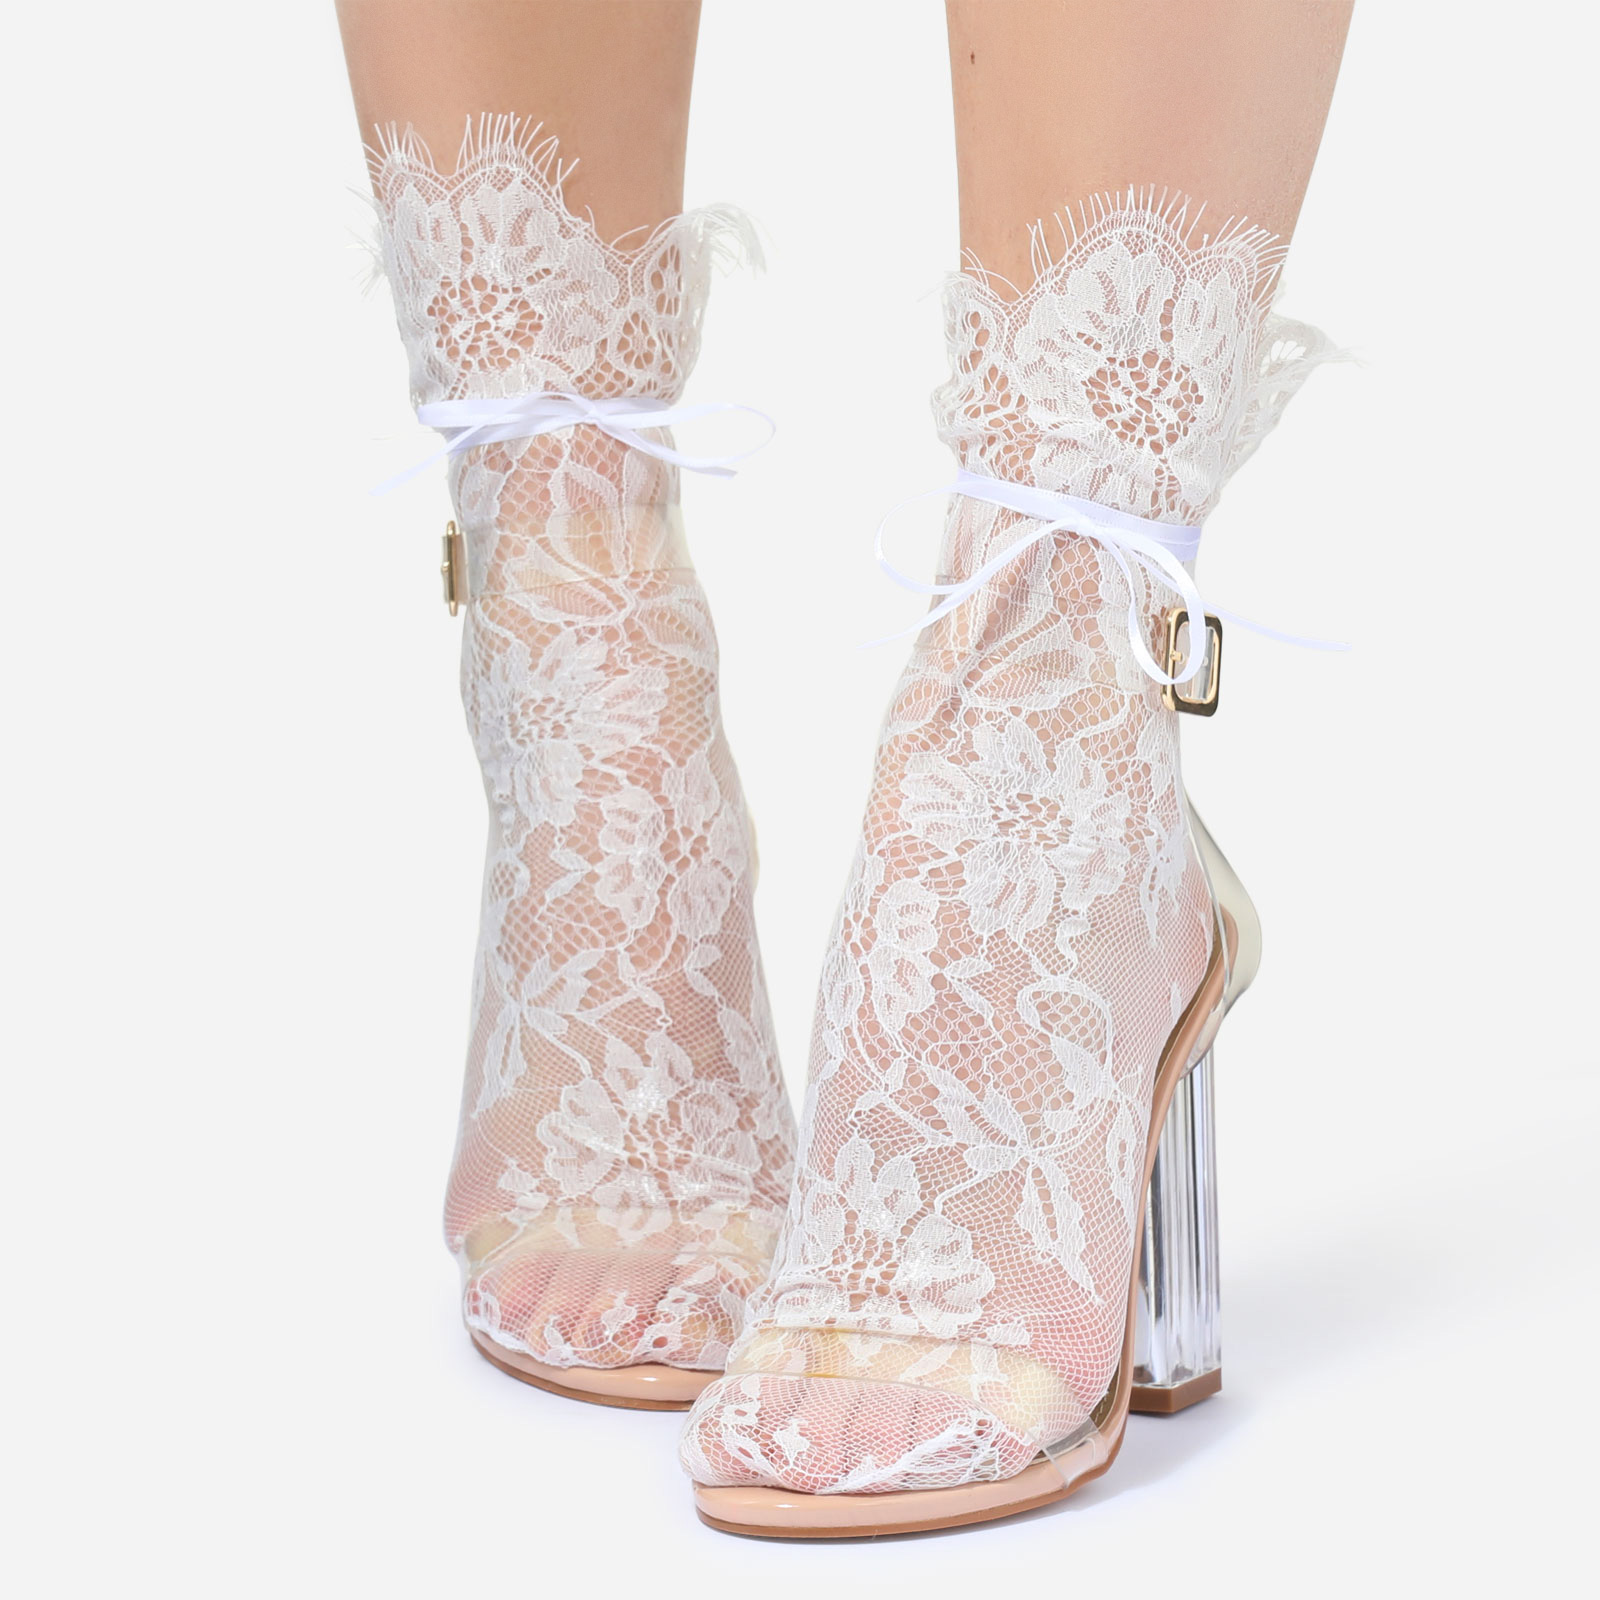 Floral Print Socks In White Lace